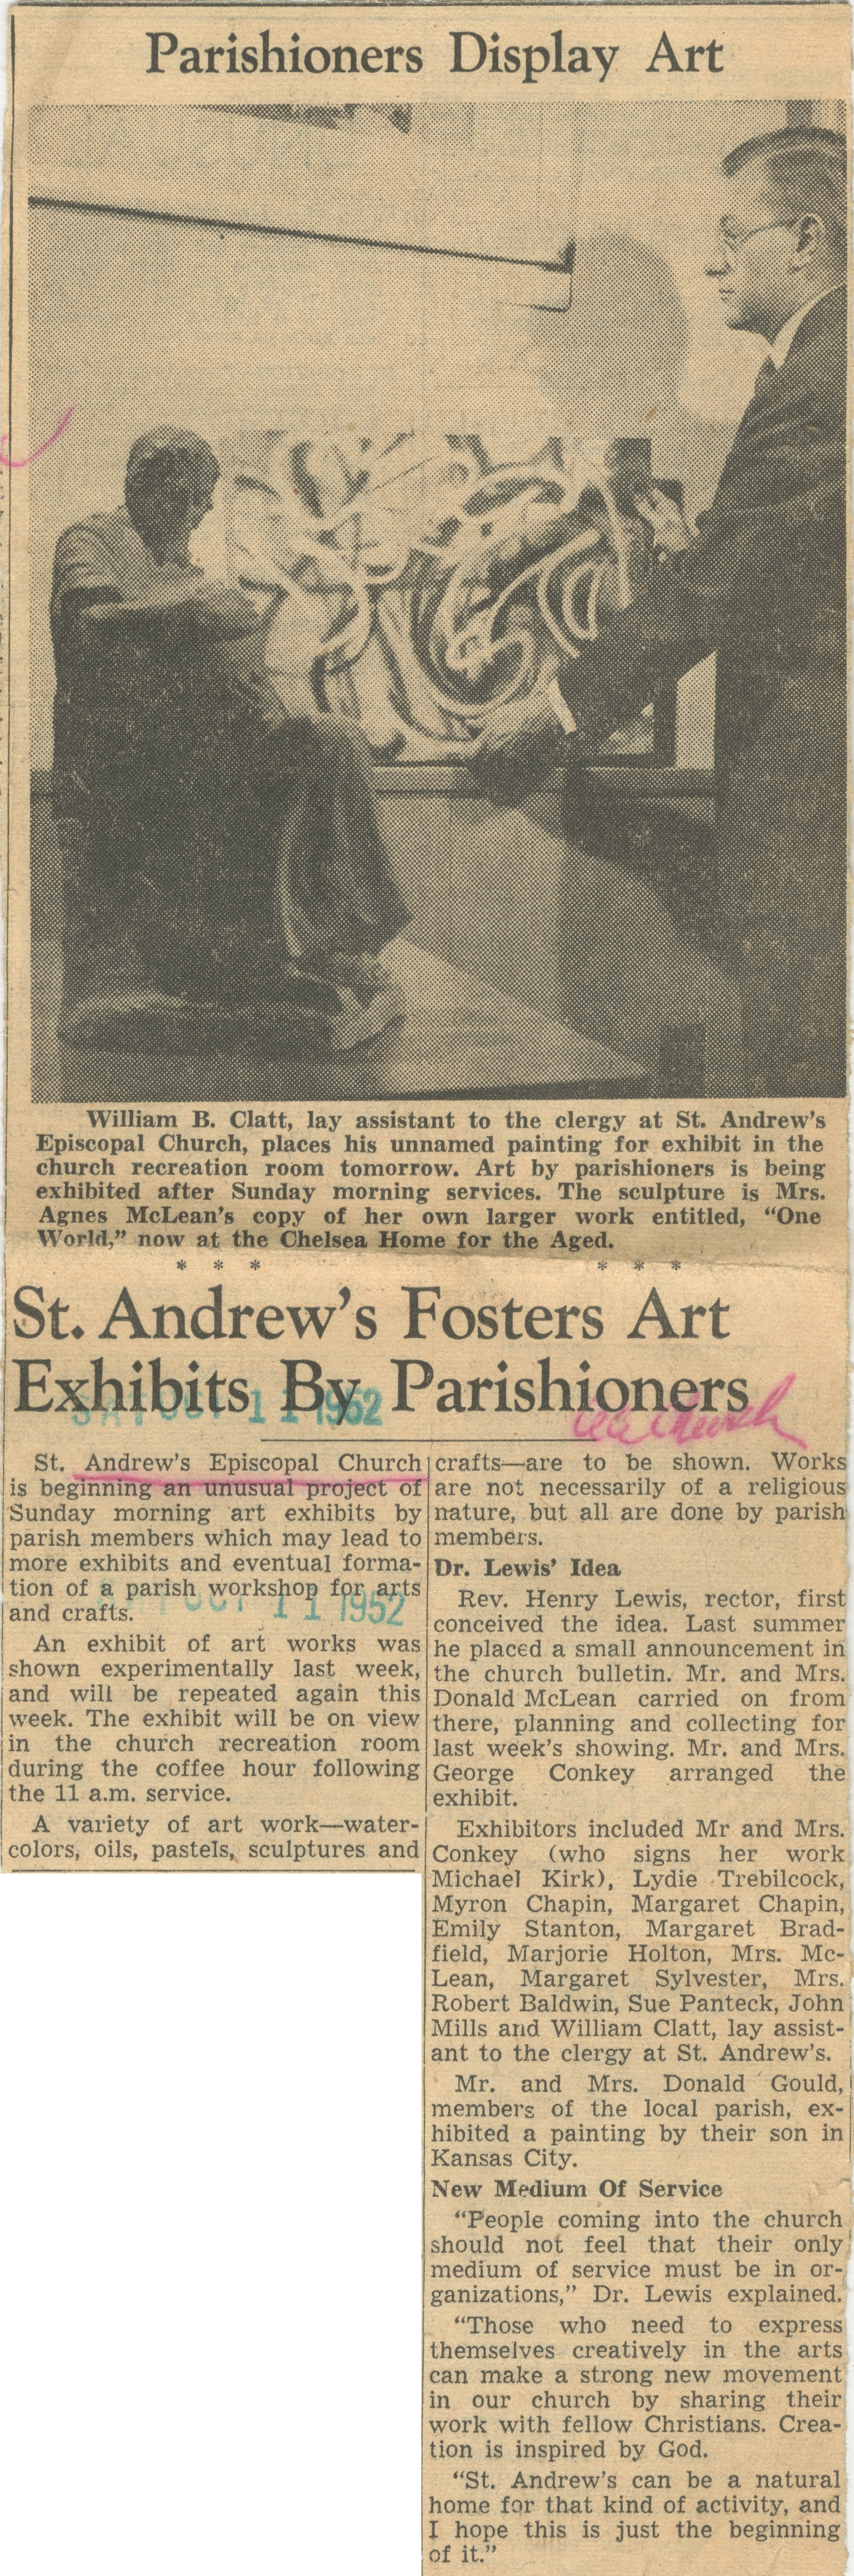 St. Andrew's Fosters Art Exhibits By Parishioners image